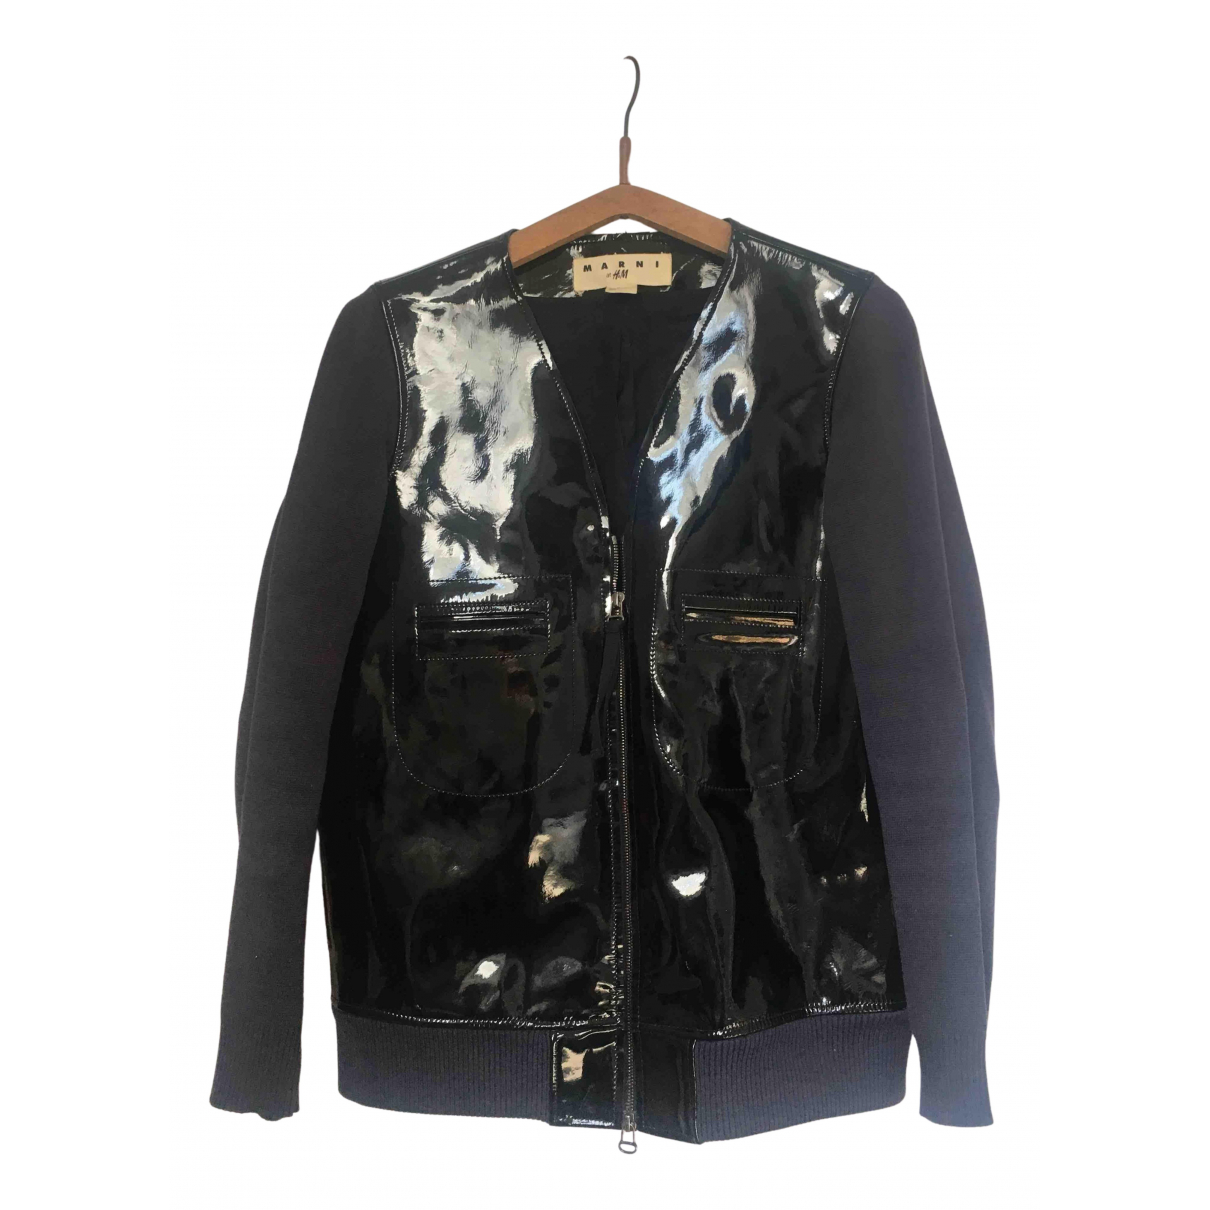 Marni For H&m \N Black Leather jacket for Women 36 FR